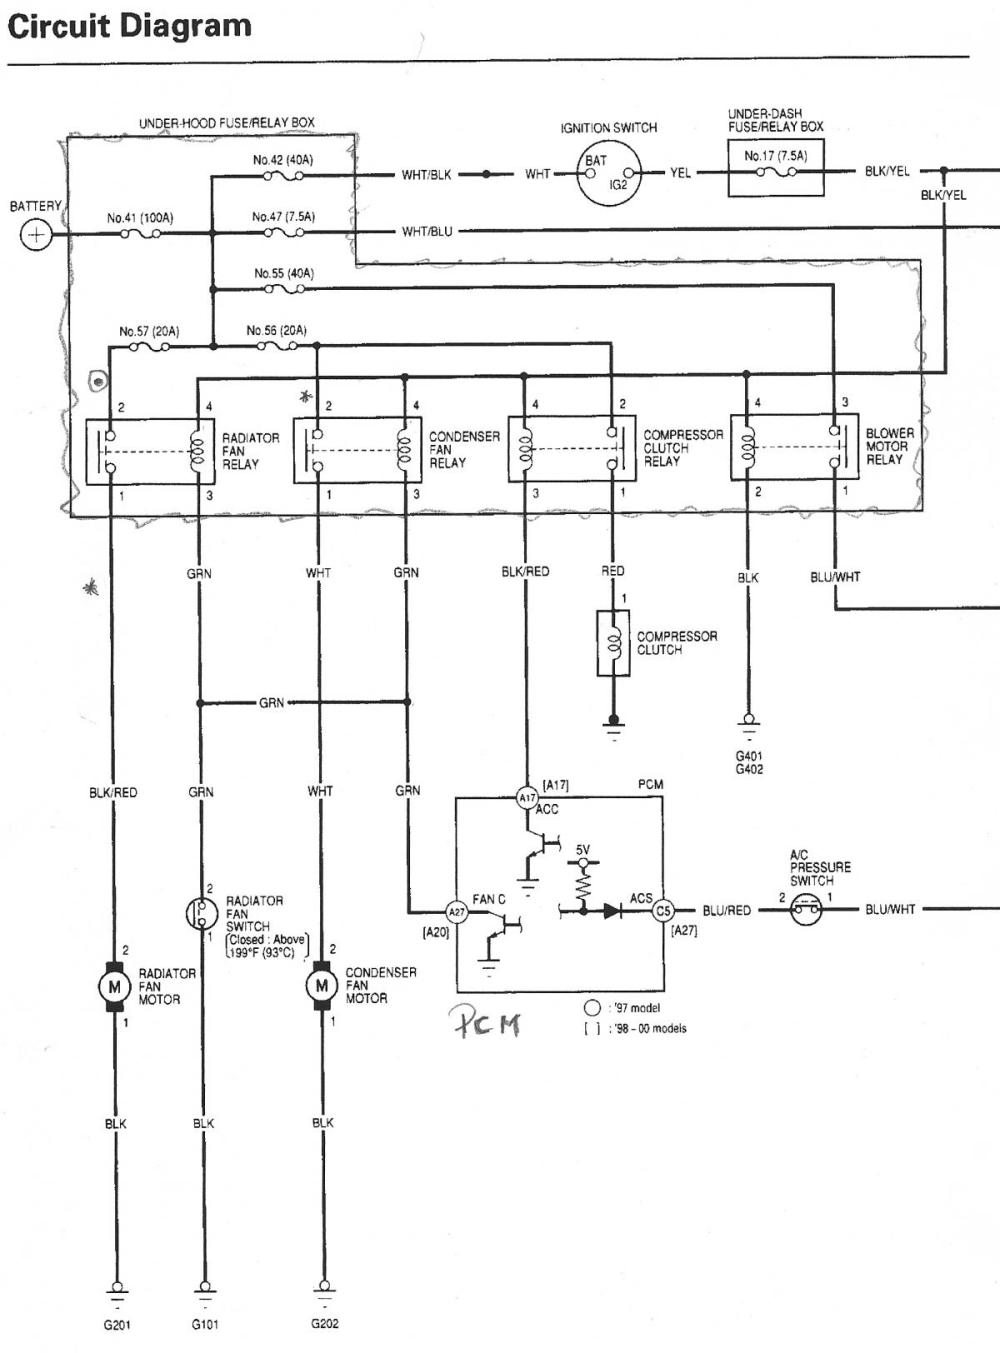 medium resolution of 2005 honda element engine fuse box diagram 16 4 castlefans de u2022 2004 honda element wiring diagram